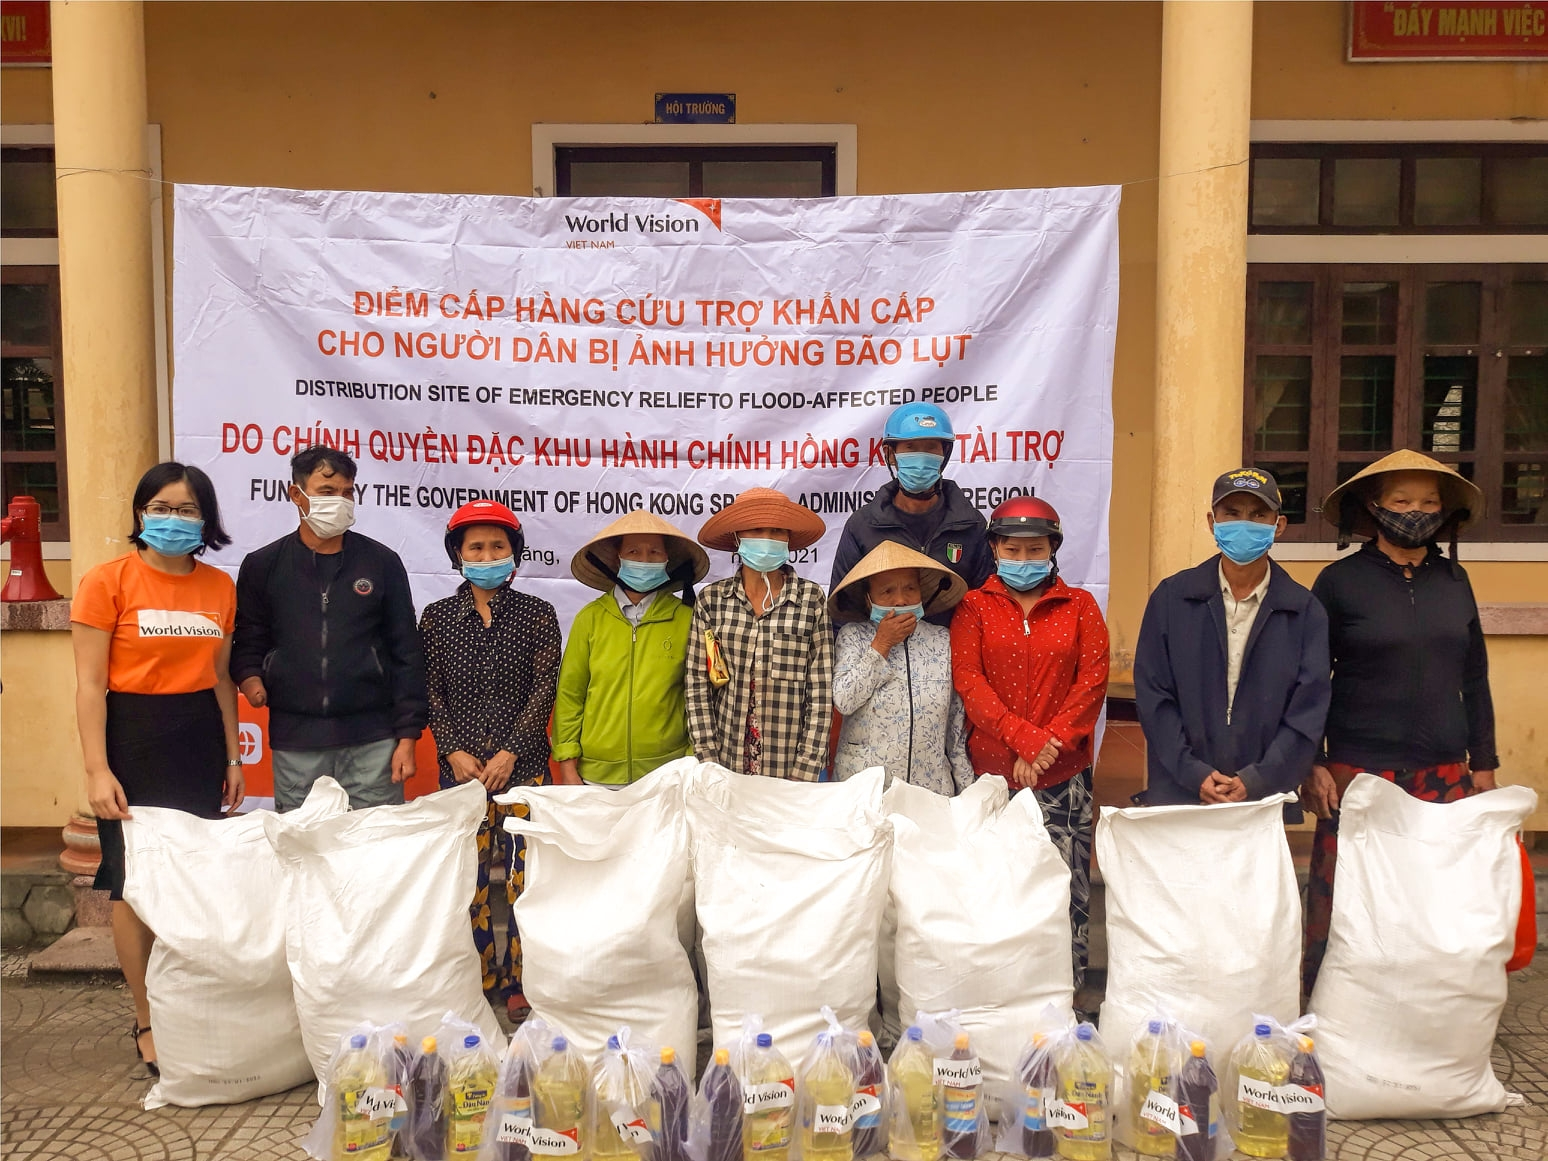 World Vision delivers flood relief for flood damaged central Vietnam